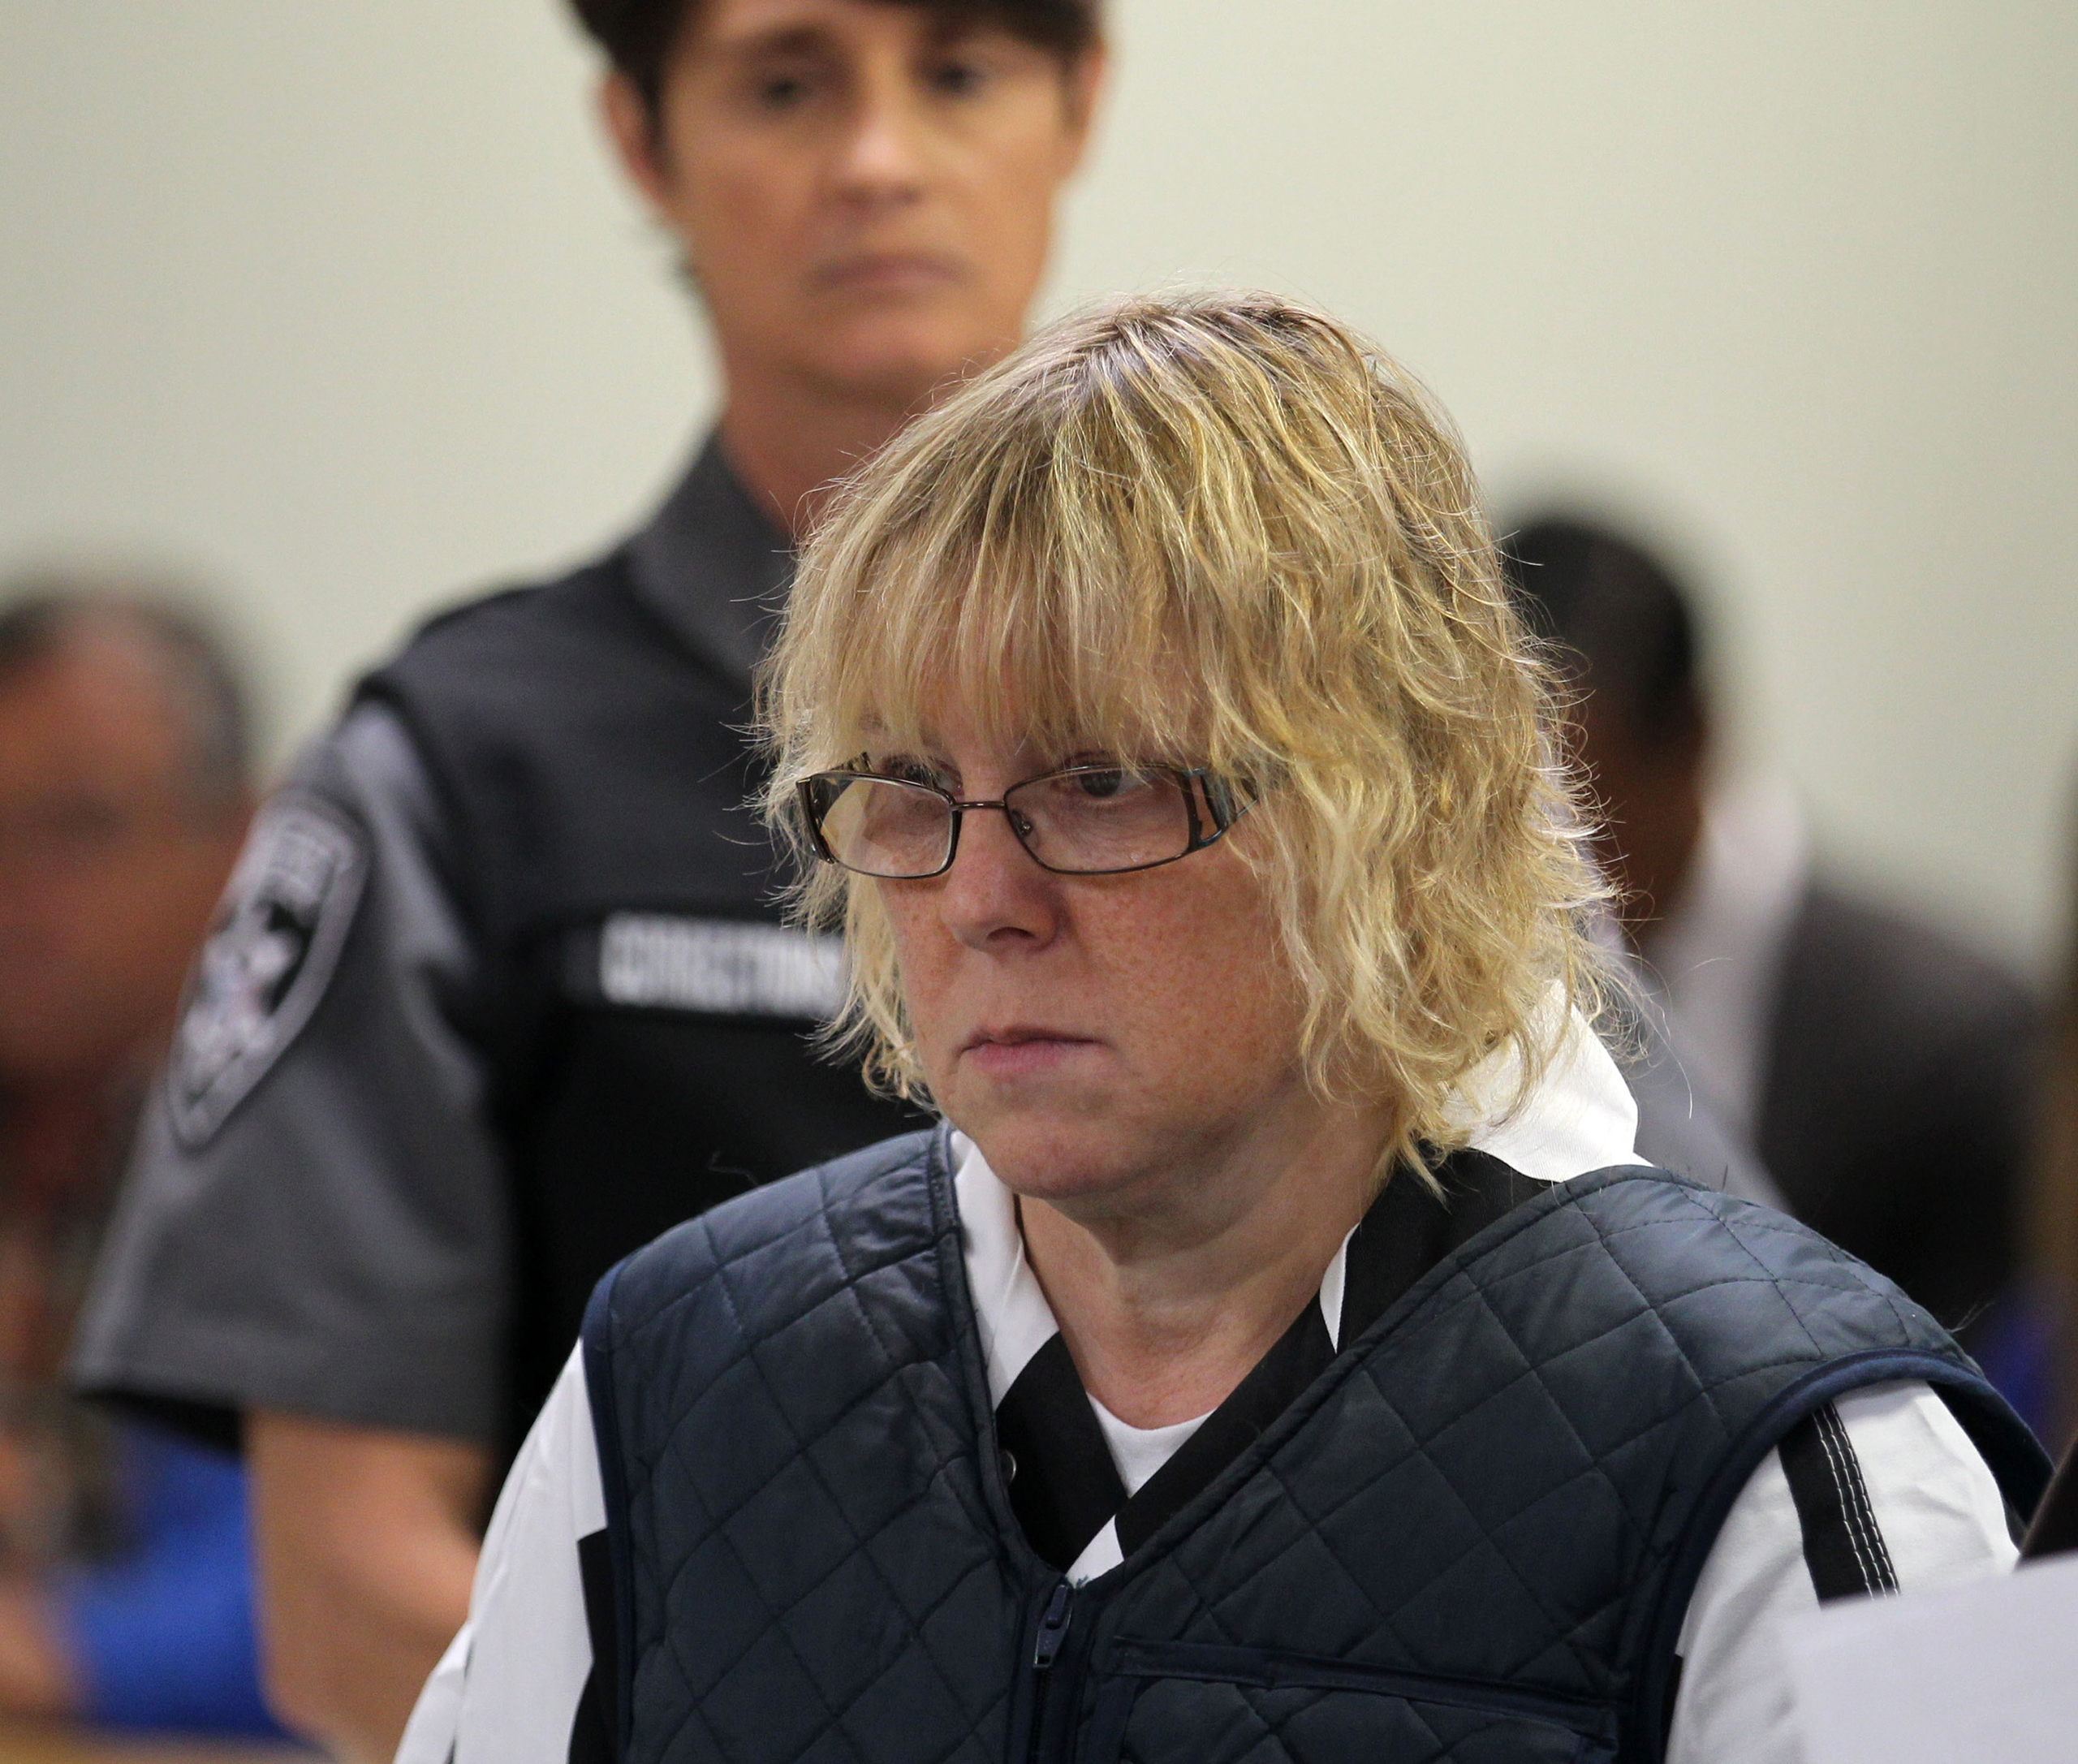 Joyce Mitchell appears before Judge Buck Rogers in Plattsburgh City Court in Plattsburgh, New York, June 15, 2015